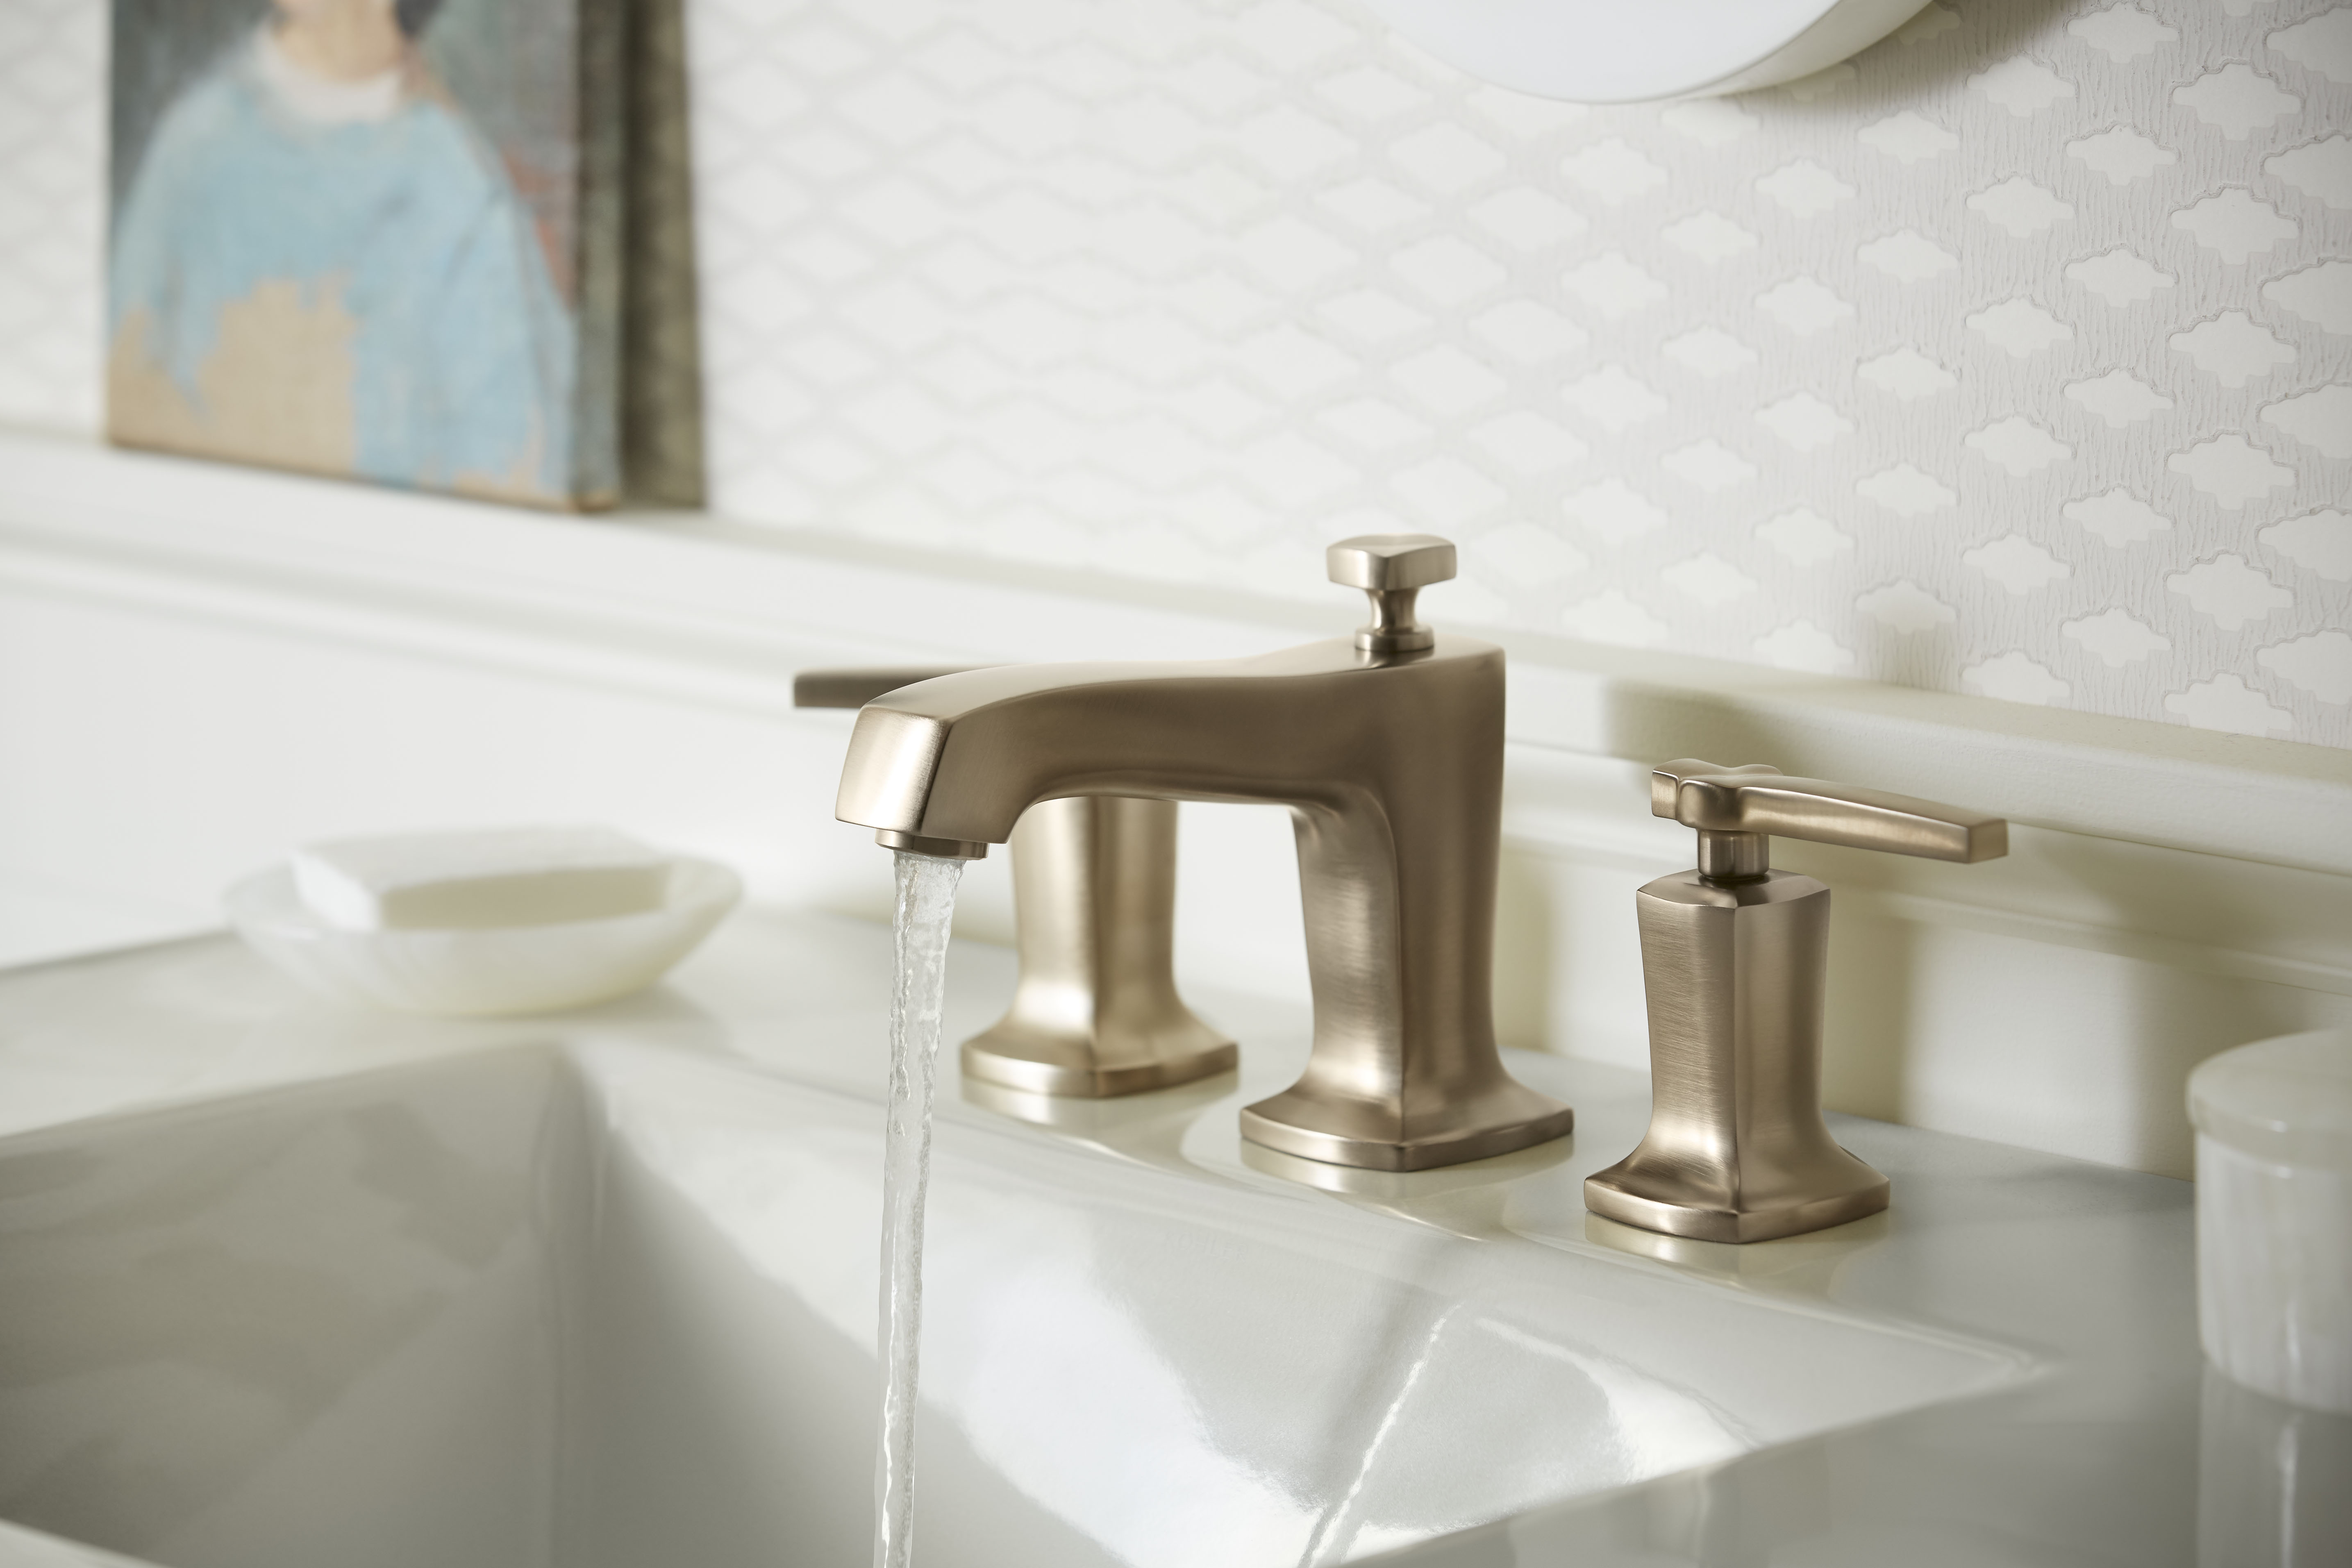 Margaux® Faucet     Ceramic/Impressions® Sink     Warm-toned finishes that make a space feel more inviting are becoming more popular in bathroom design.